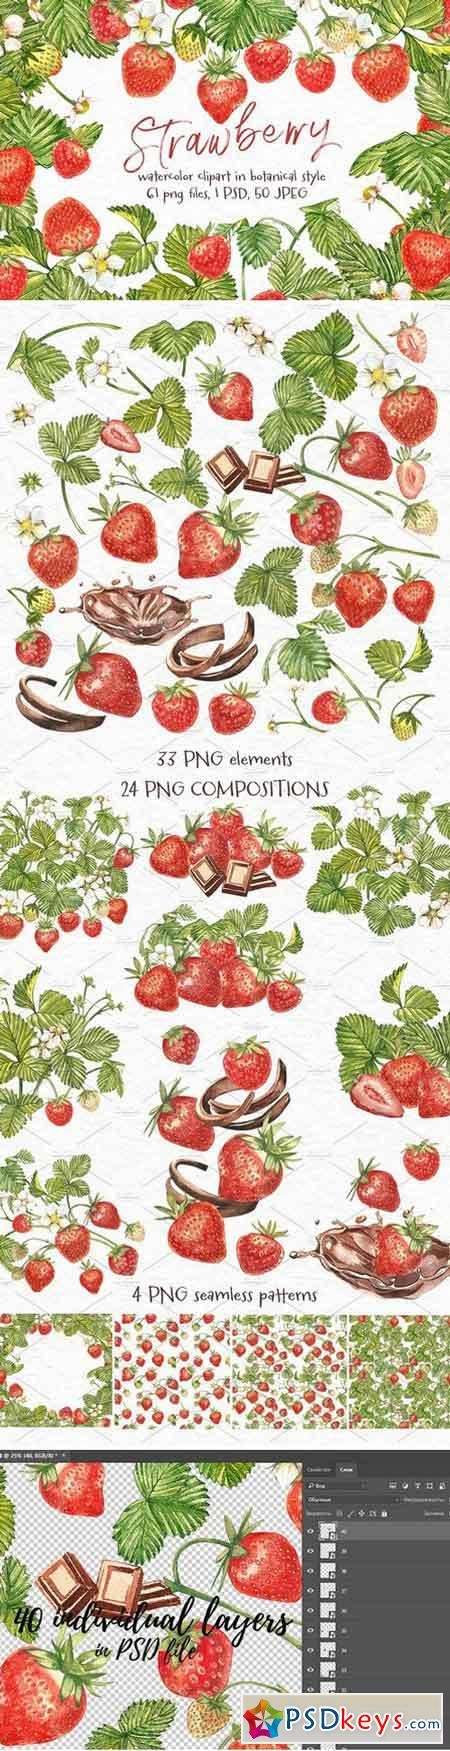 Strawberry illustrations 2078355